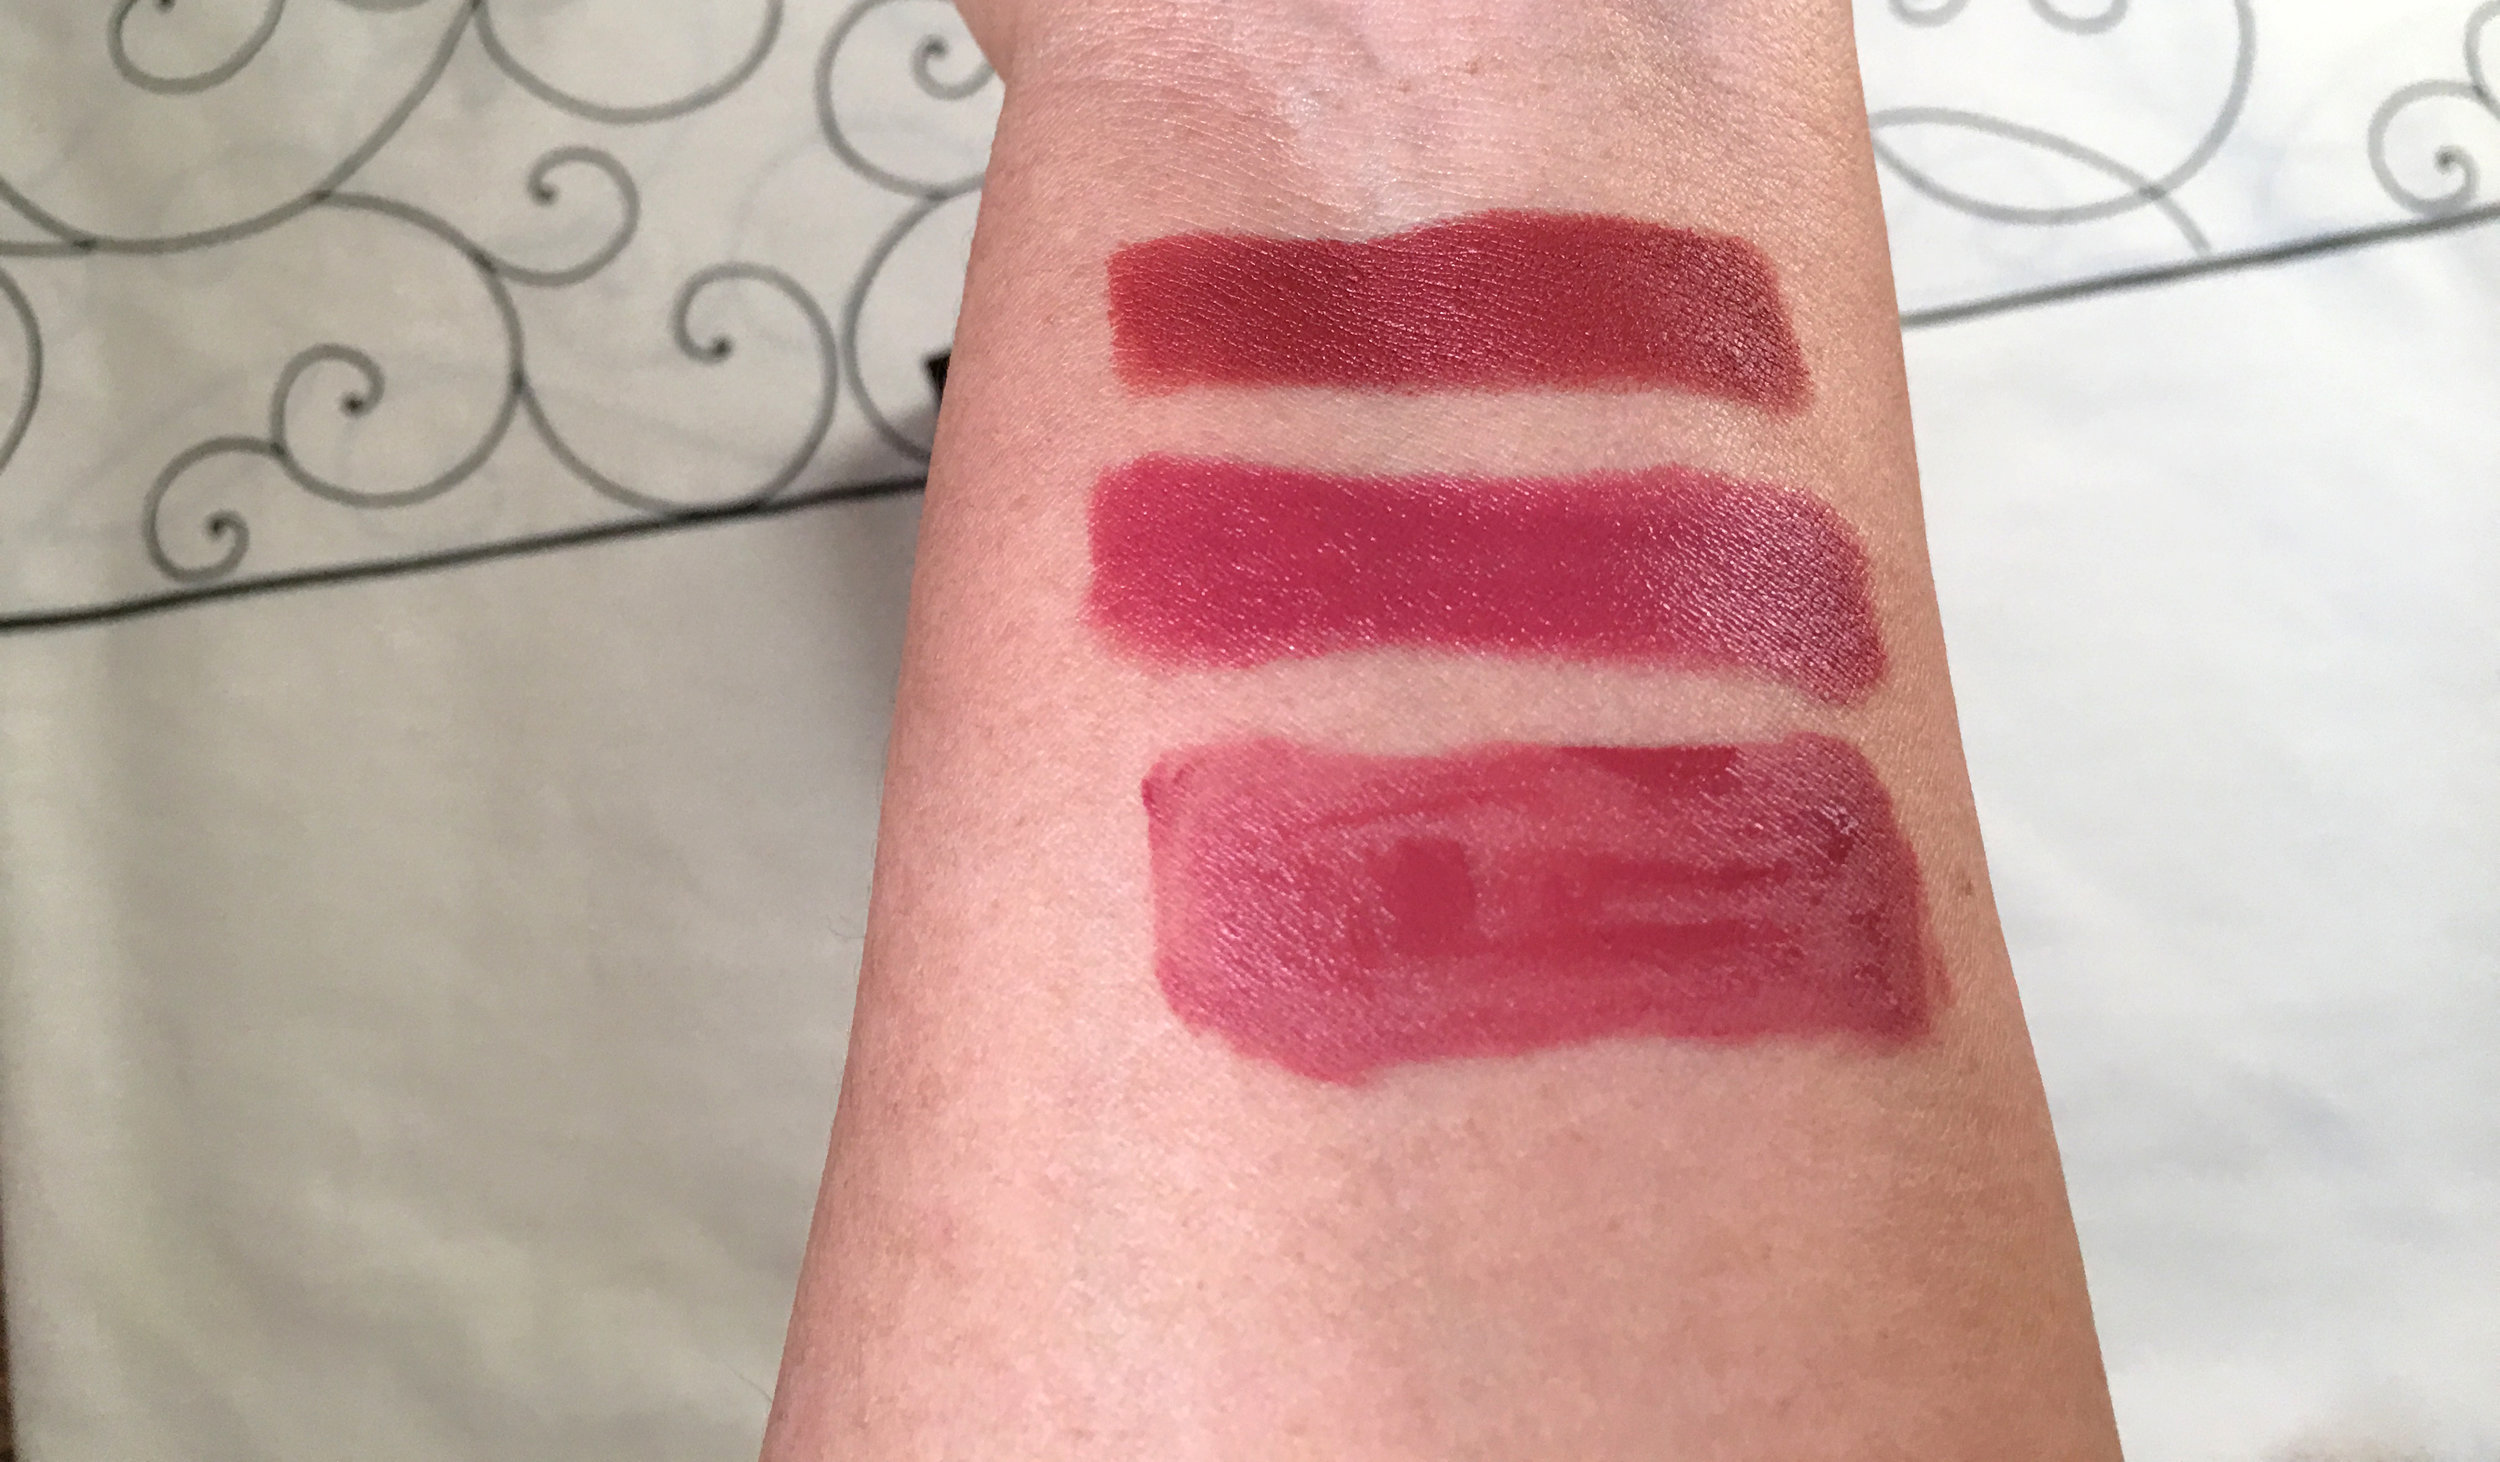 Note: Swatches from top are Elegant, Classy and Sassy.